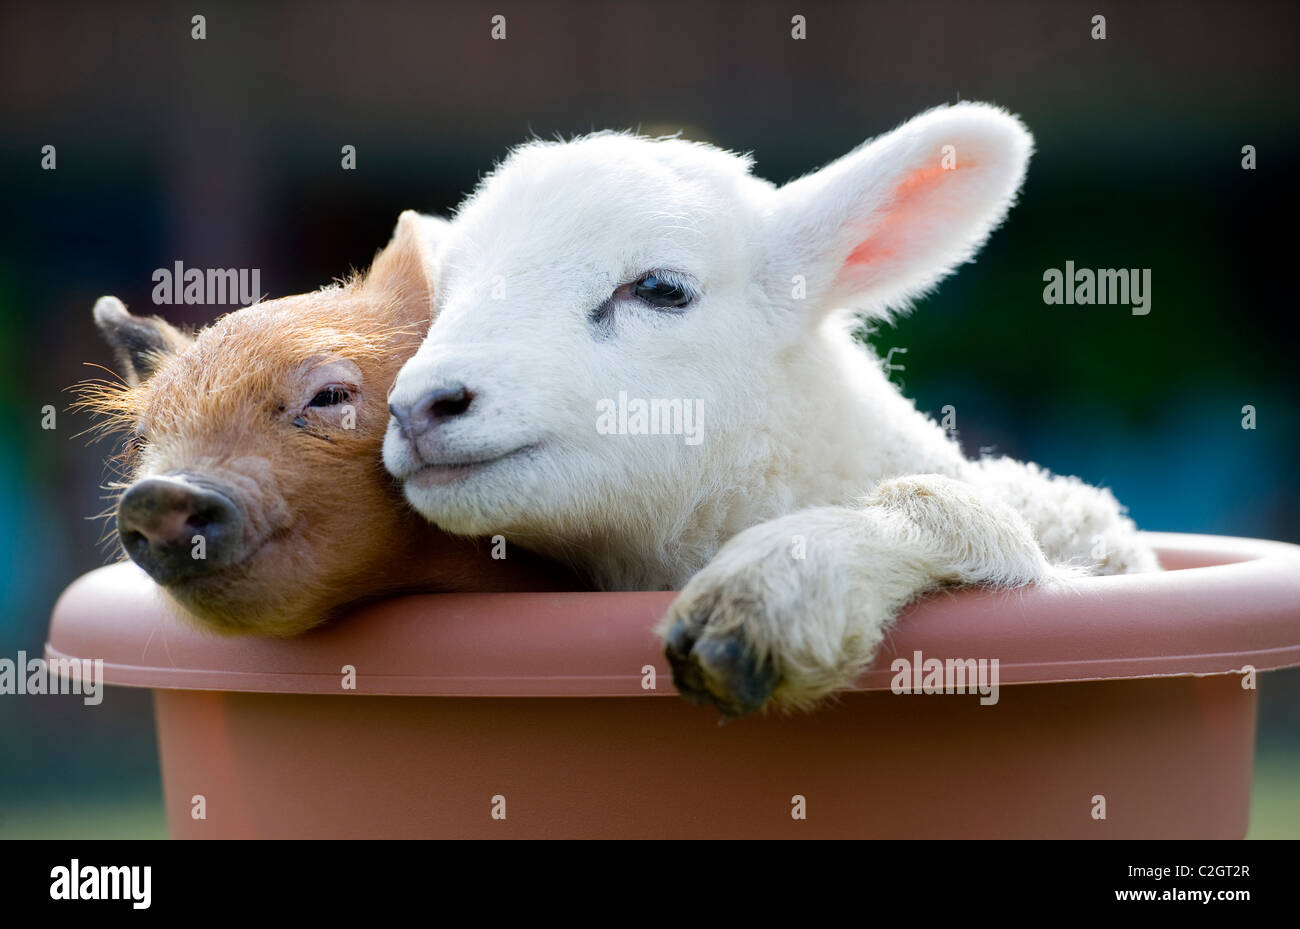 A cute newborn baby piglet and lamb cuddle on a farm, Devon, UK - Stock Image